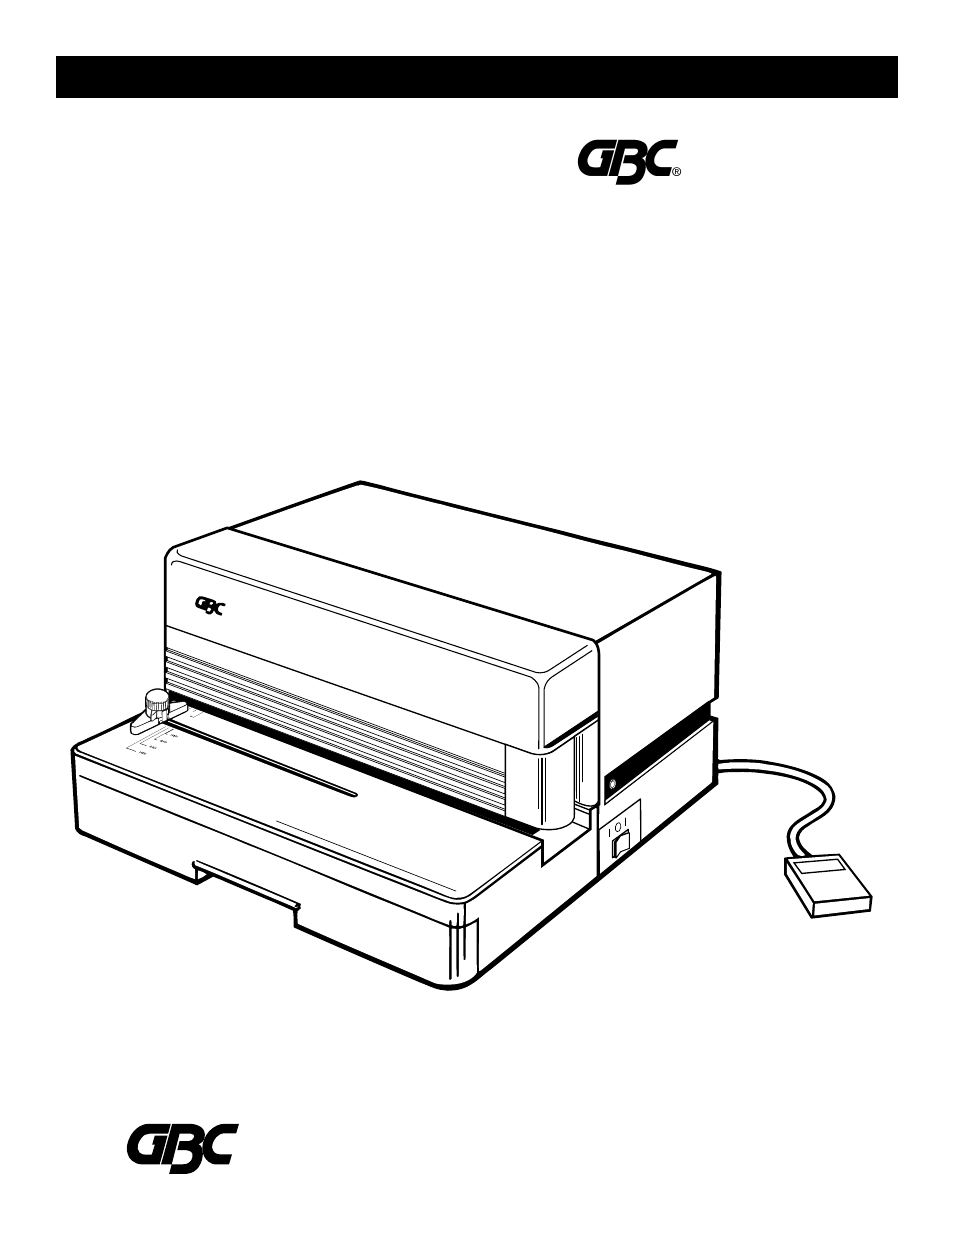 hight resolution of gbc magnapunch user manual 36 pages also for magna punch basic wiring diagram gbc wiring diagram